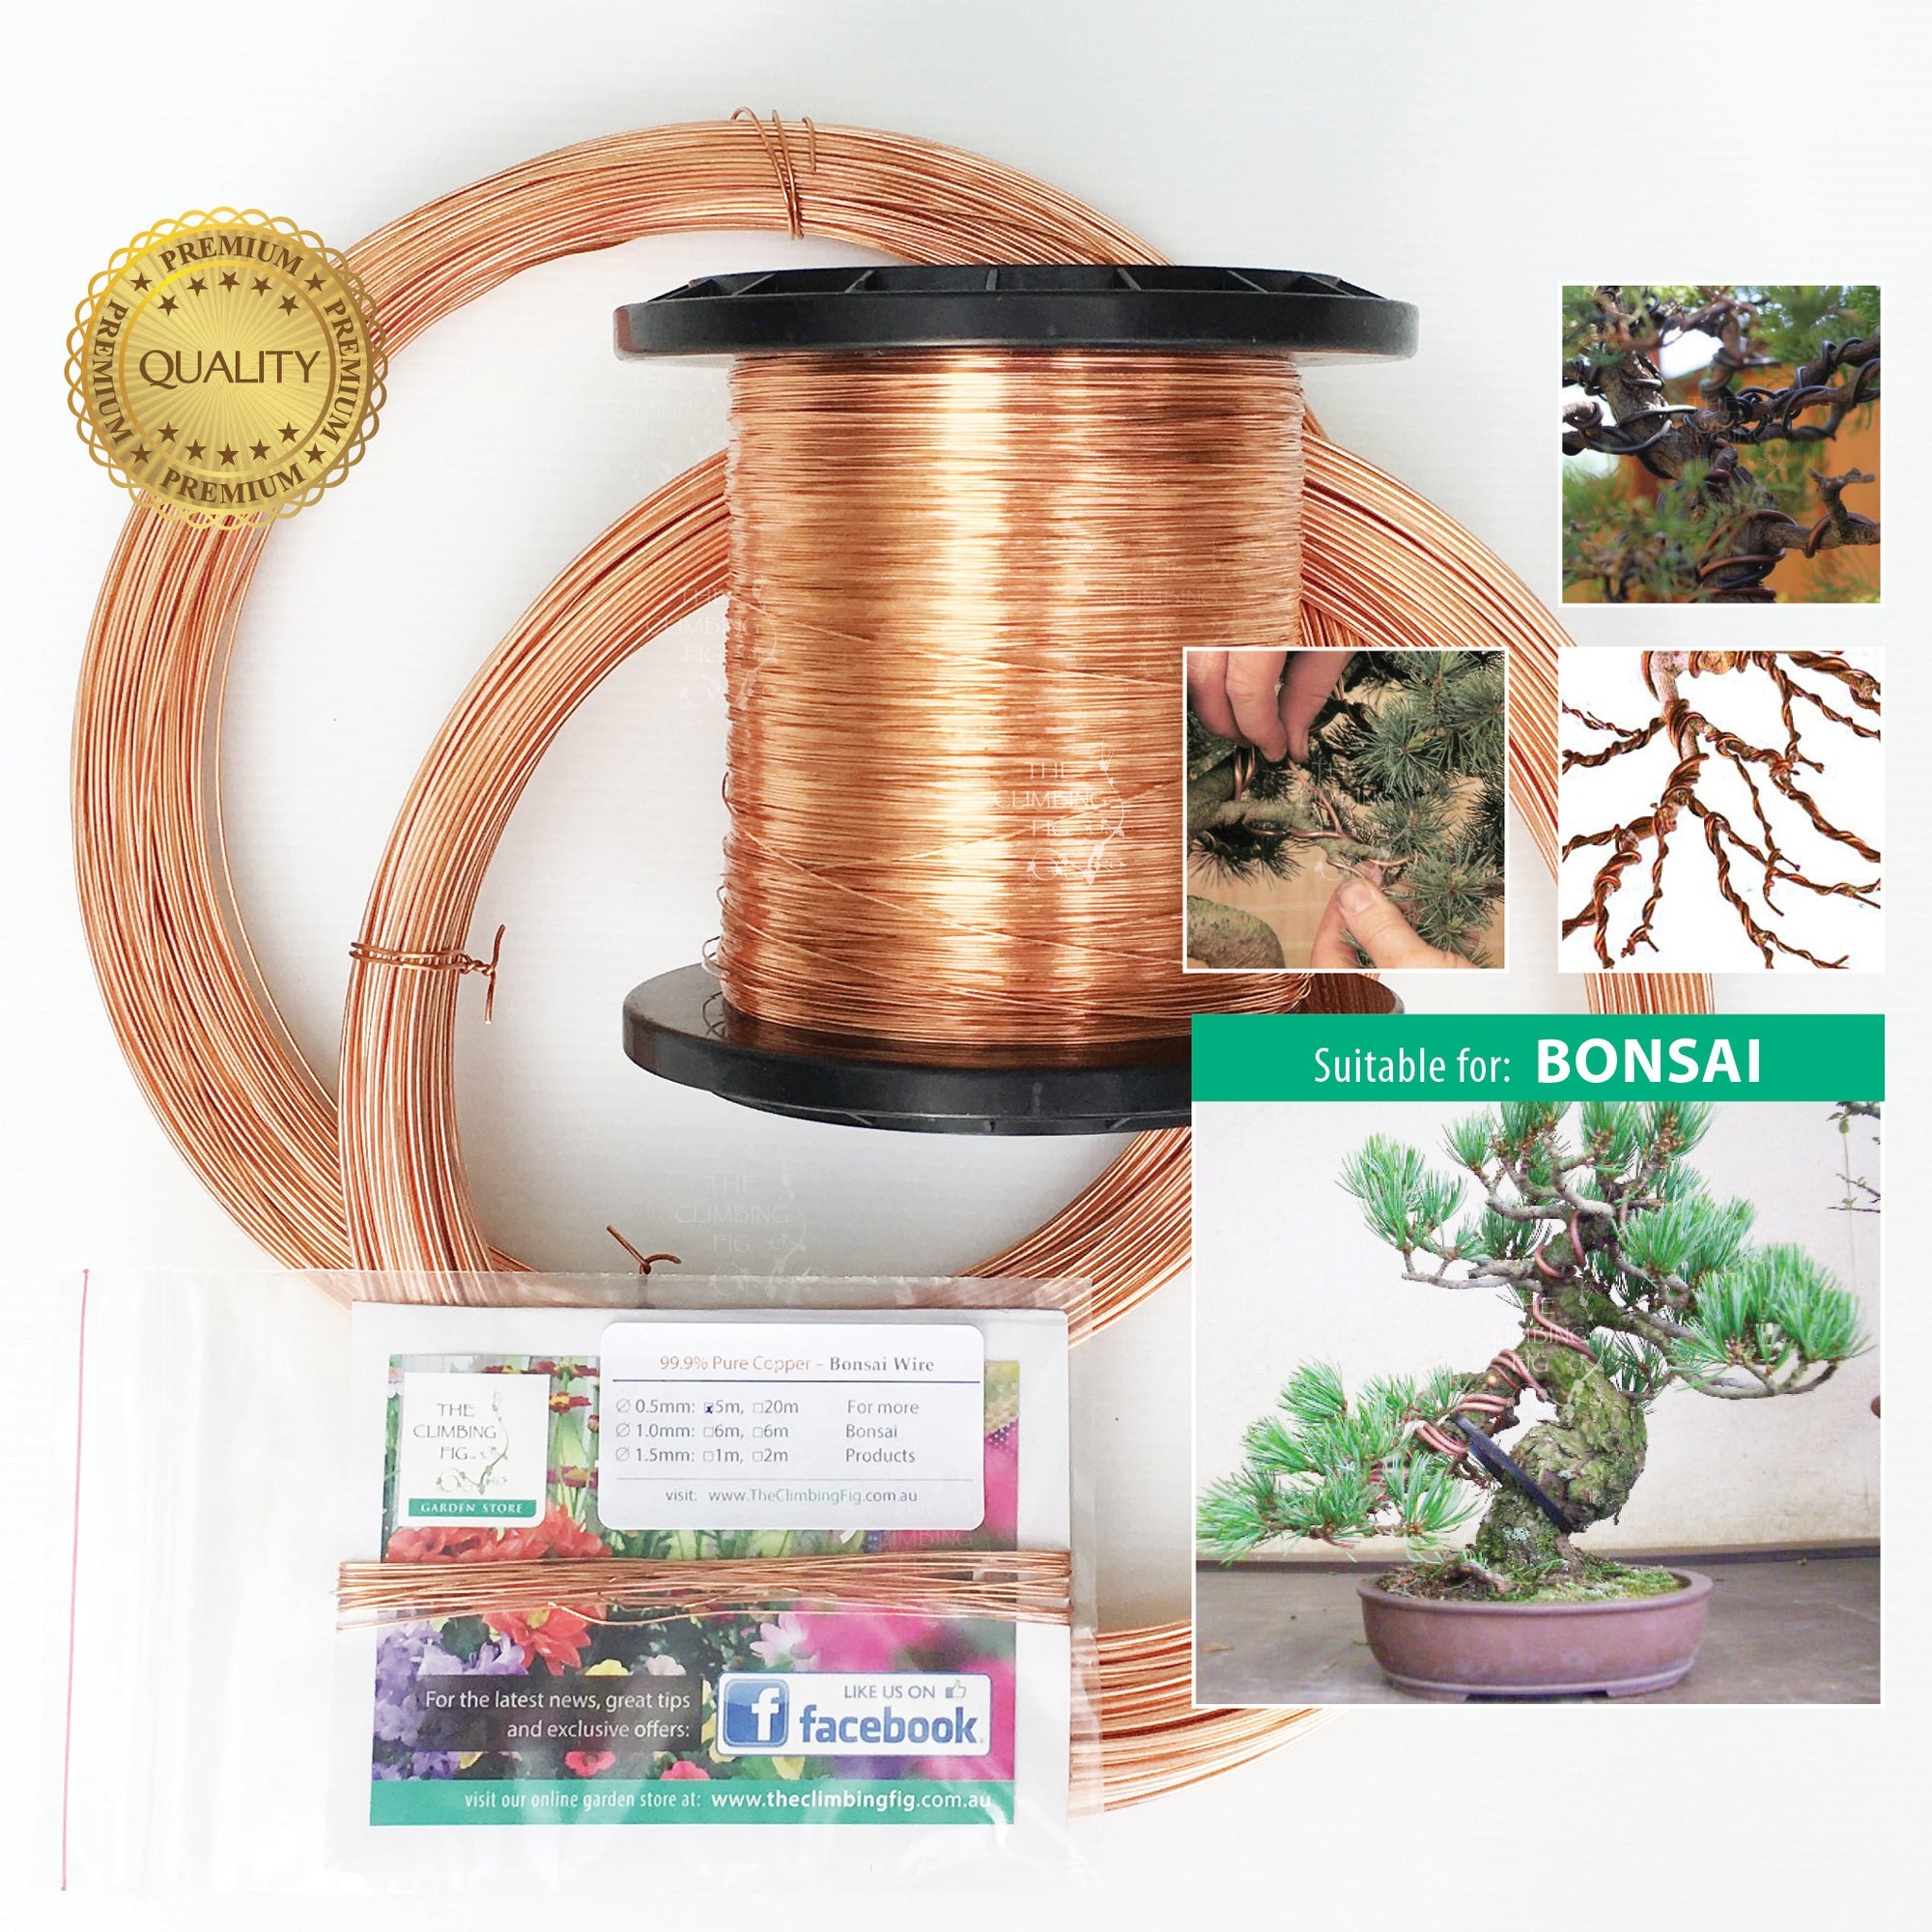 Bonsai Wire 99.9% Jewellery Grade Copper Soft Annealed. To train bonsai plants